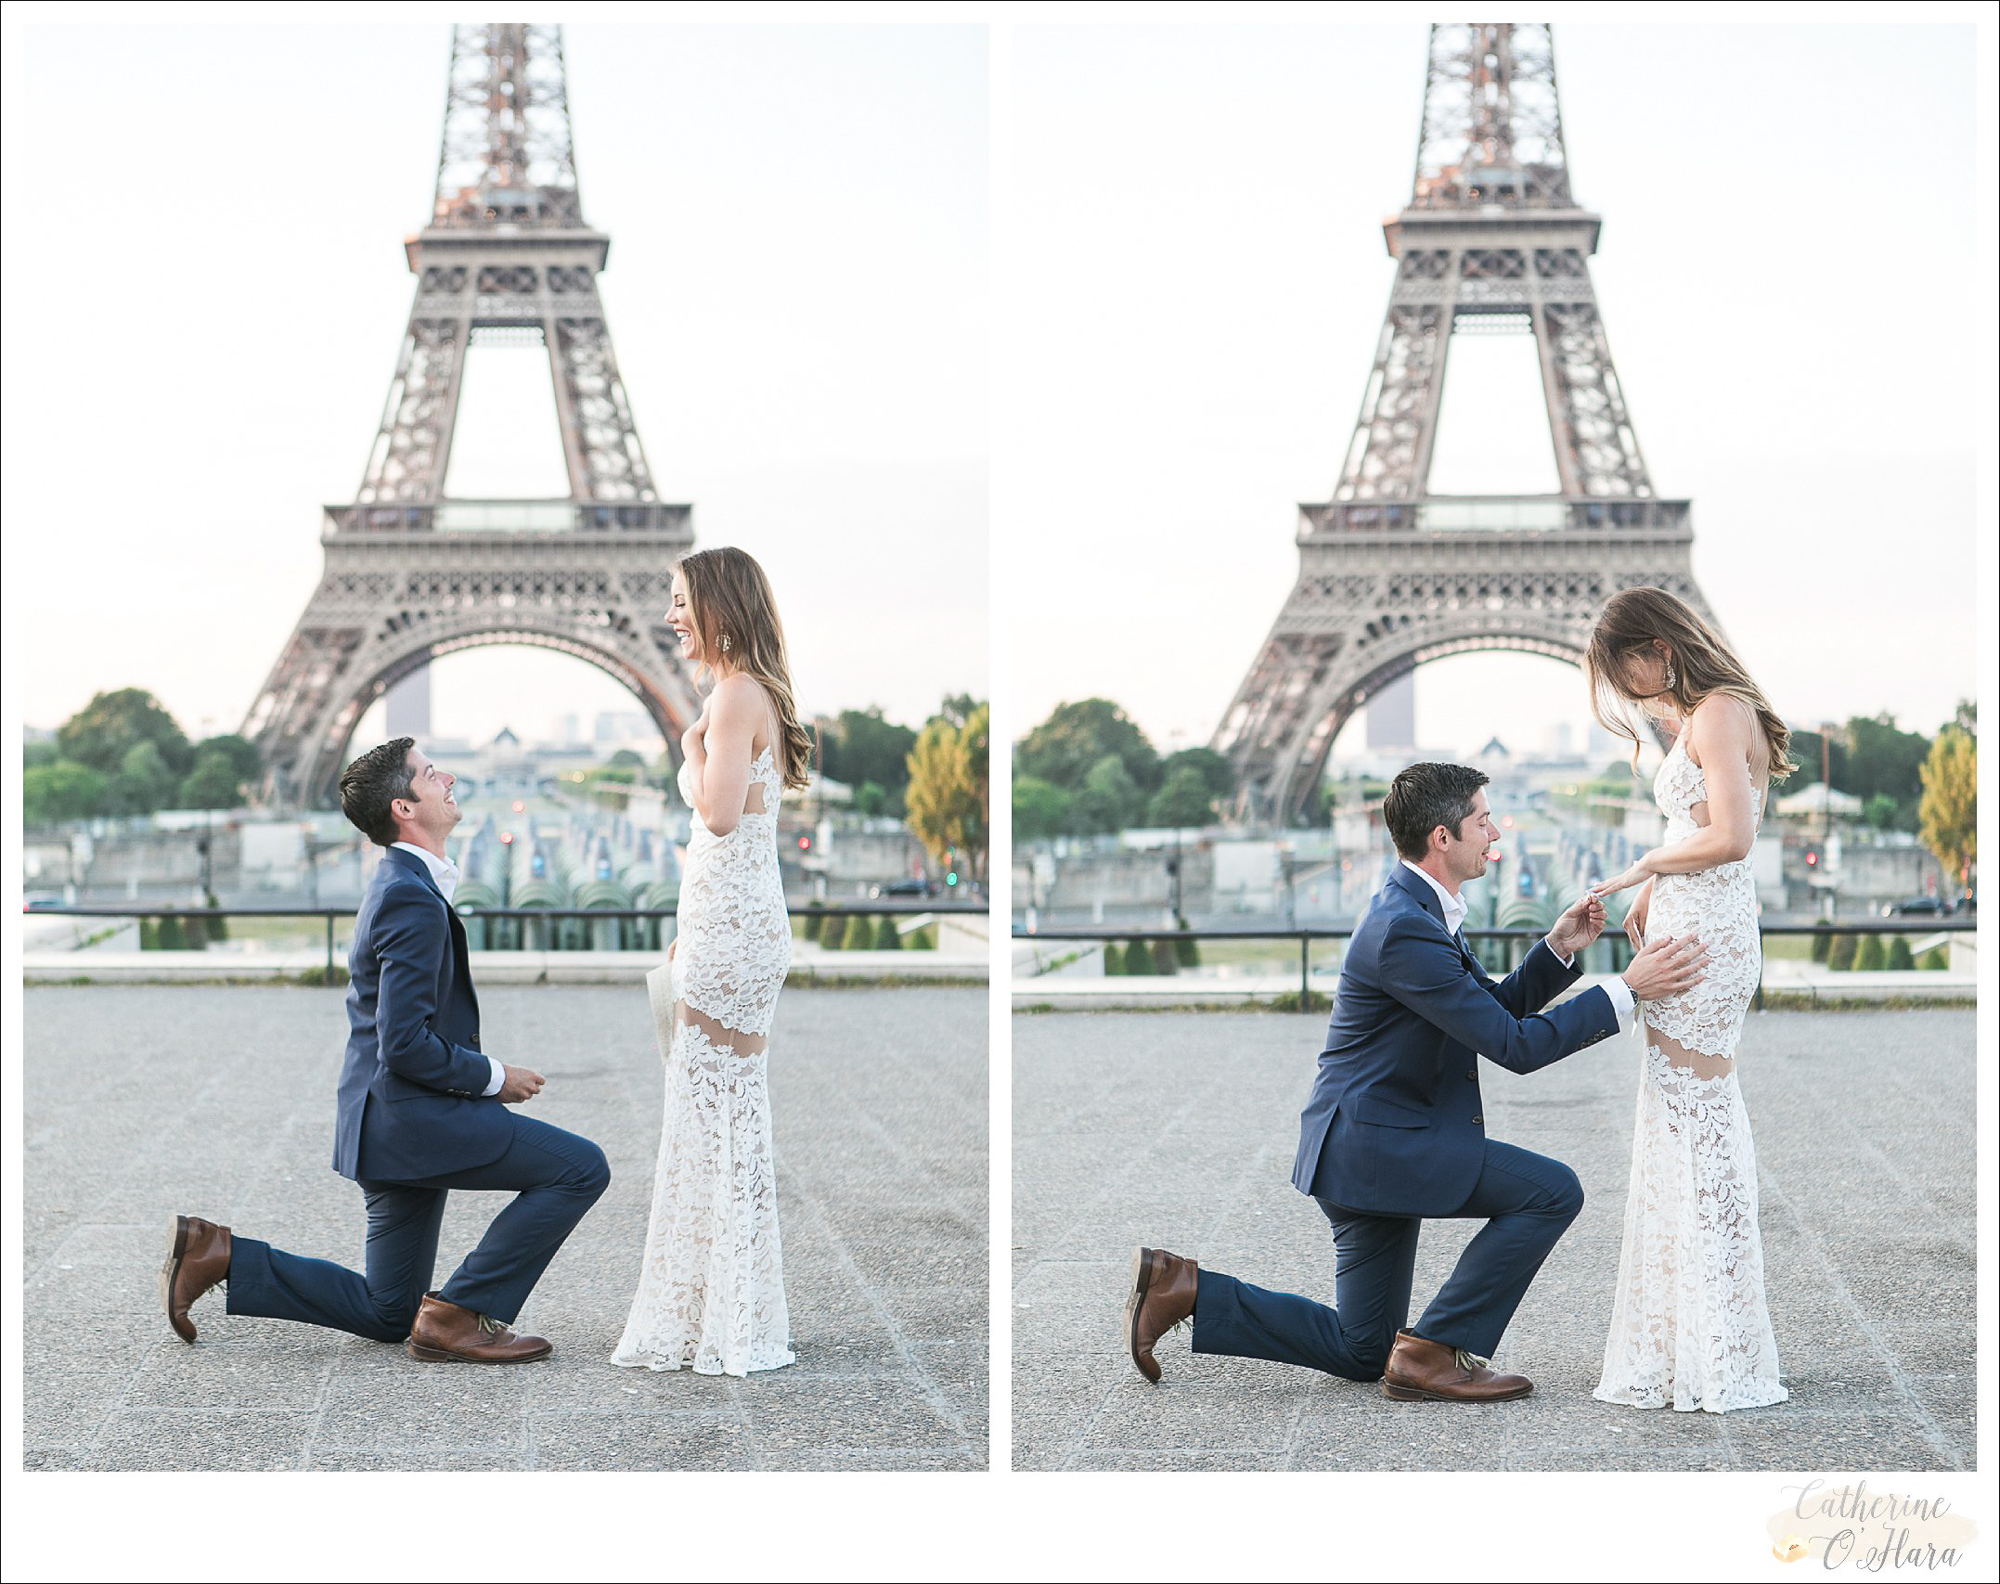 surprise proposal engagement photographer paris france-34.jpg